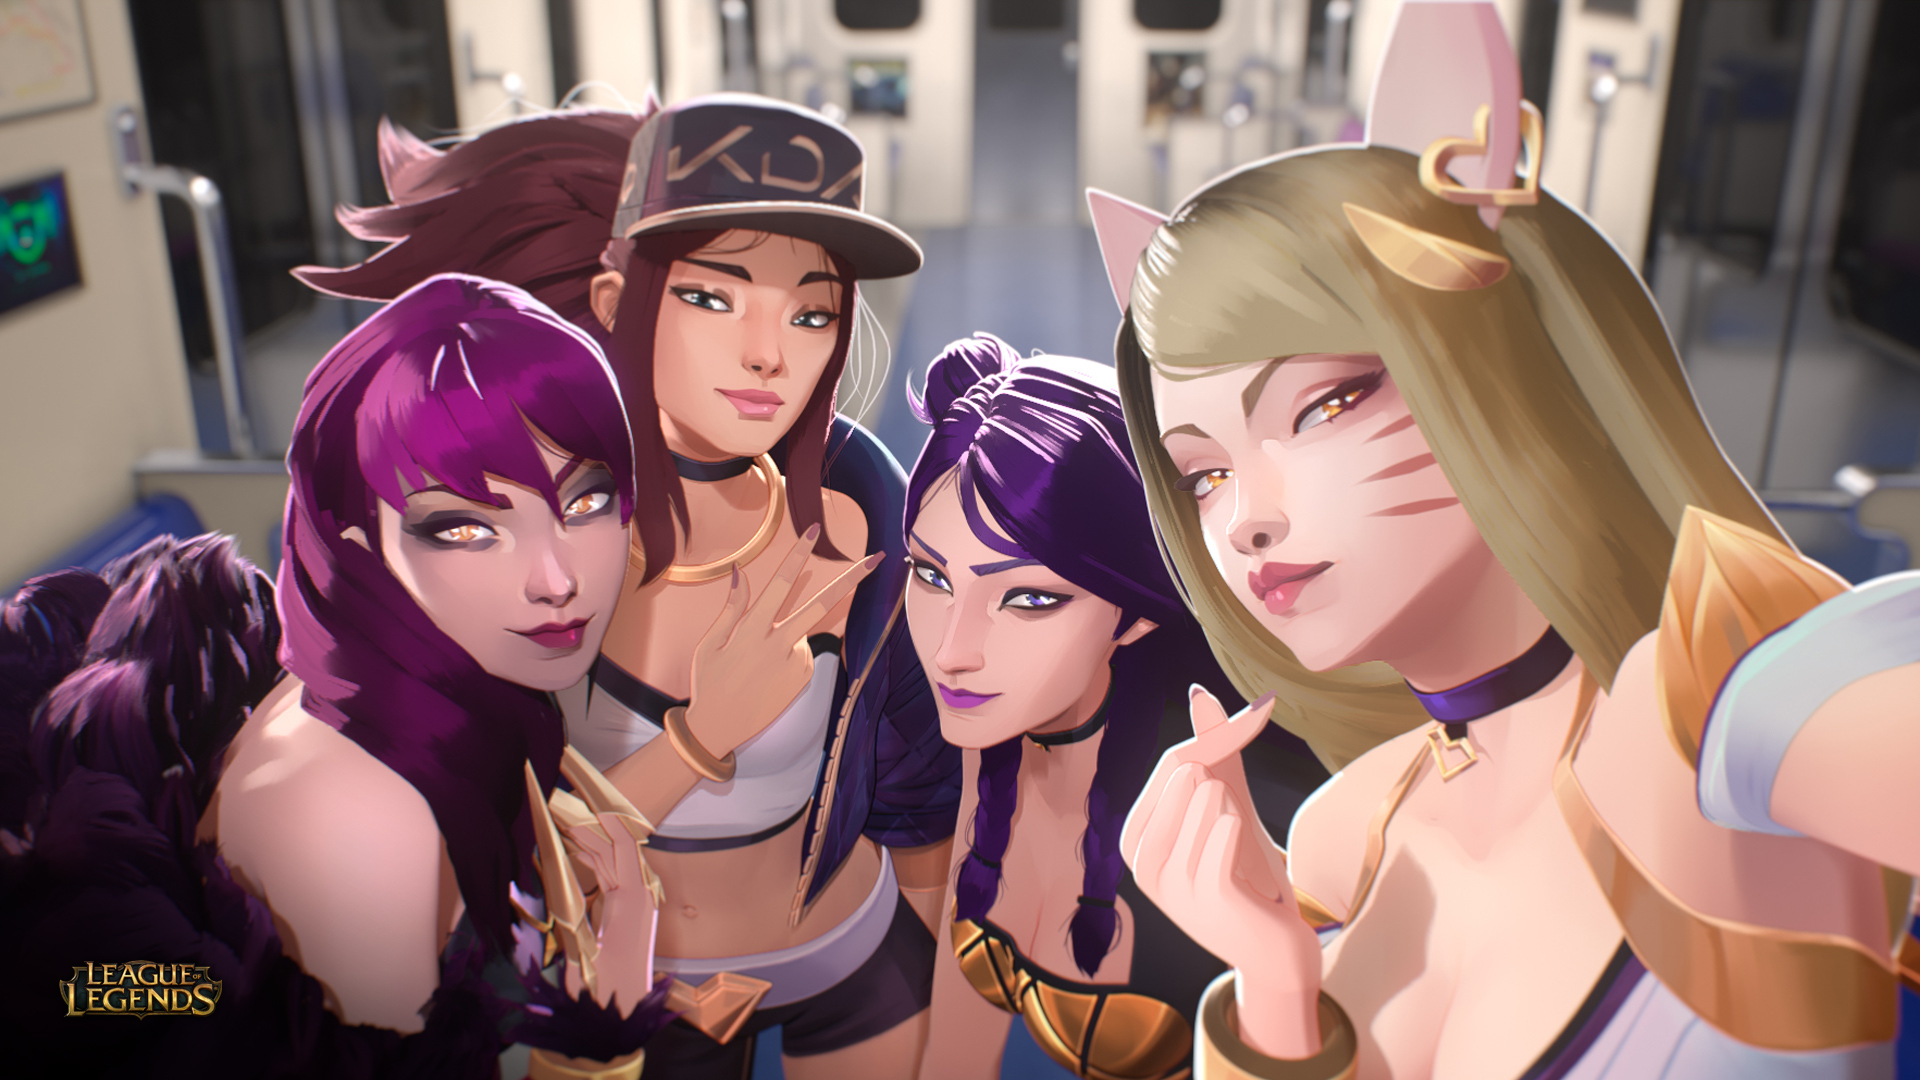 K/DA, League of Legends' pop girl group, explained - Polygon